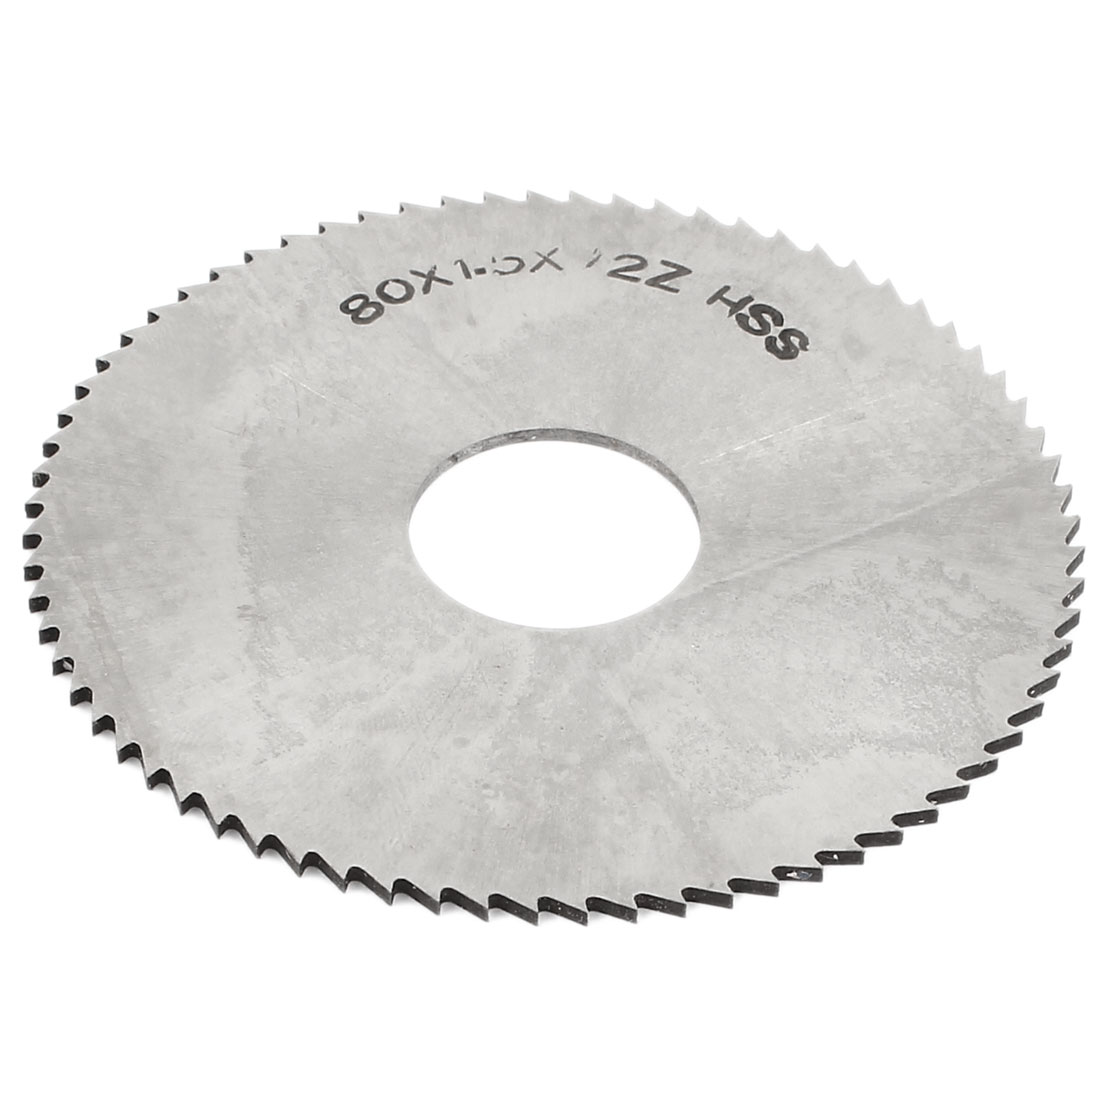 Hand Tool 72 Tooth Cutter Silver Tone HSS Slitting Saw 80mm x 22mm x 1.5mm